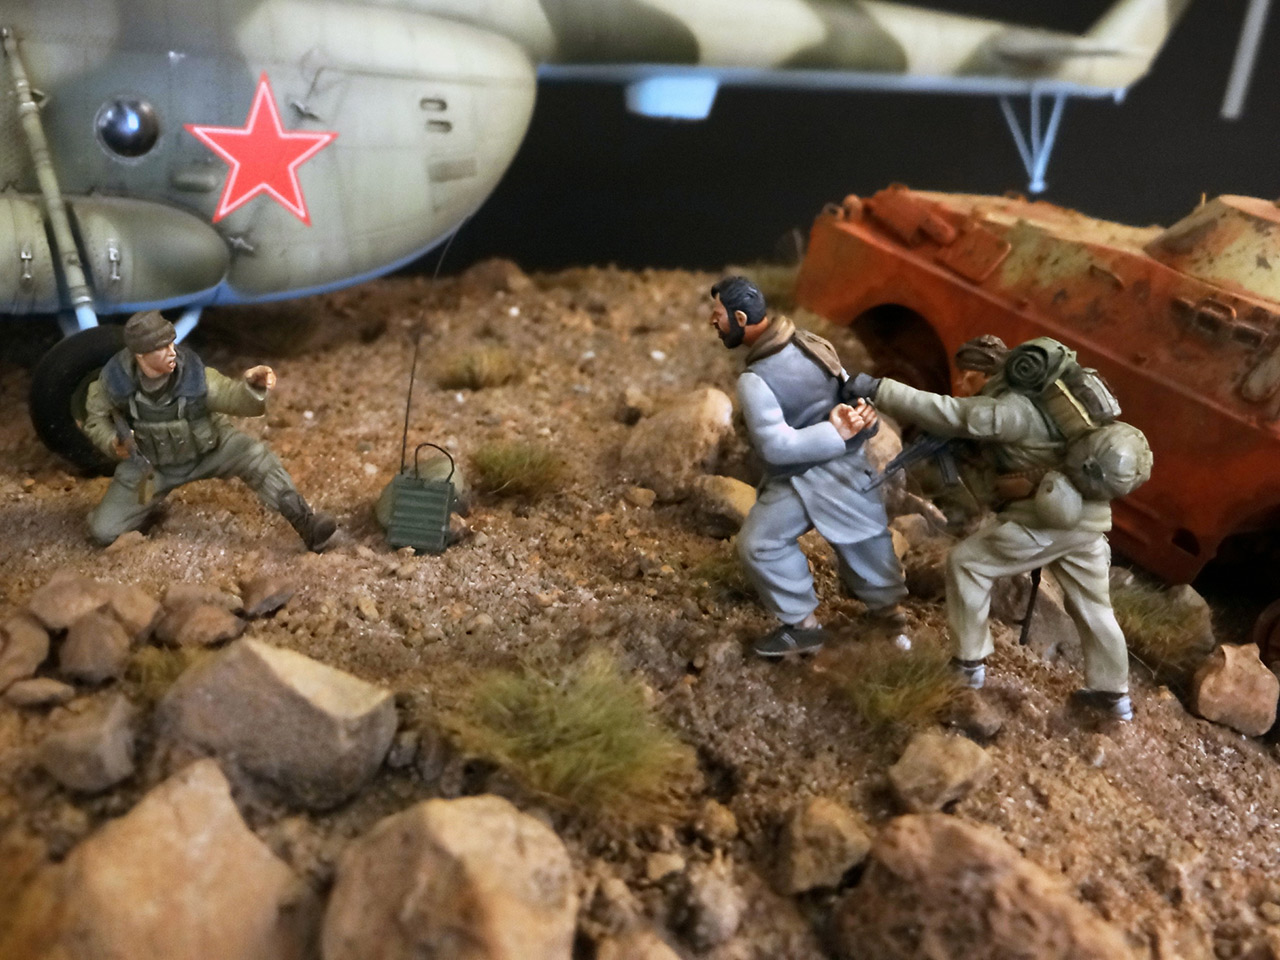 Dioramas and Vignettes: GRU special forces in Afghanistan, photo #21